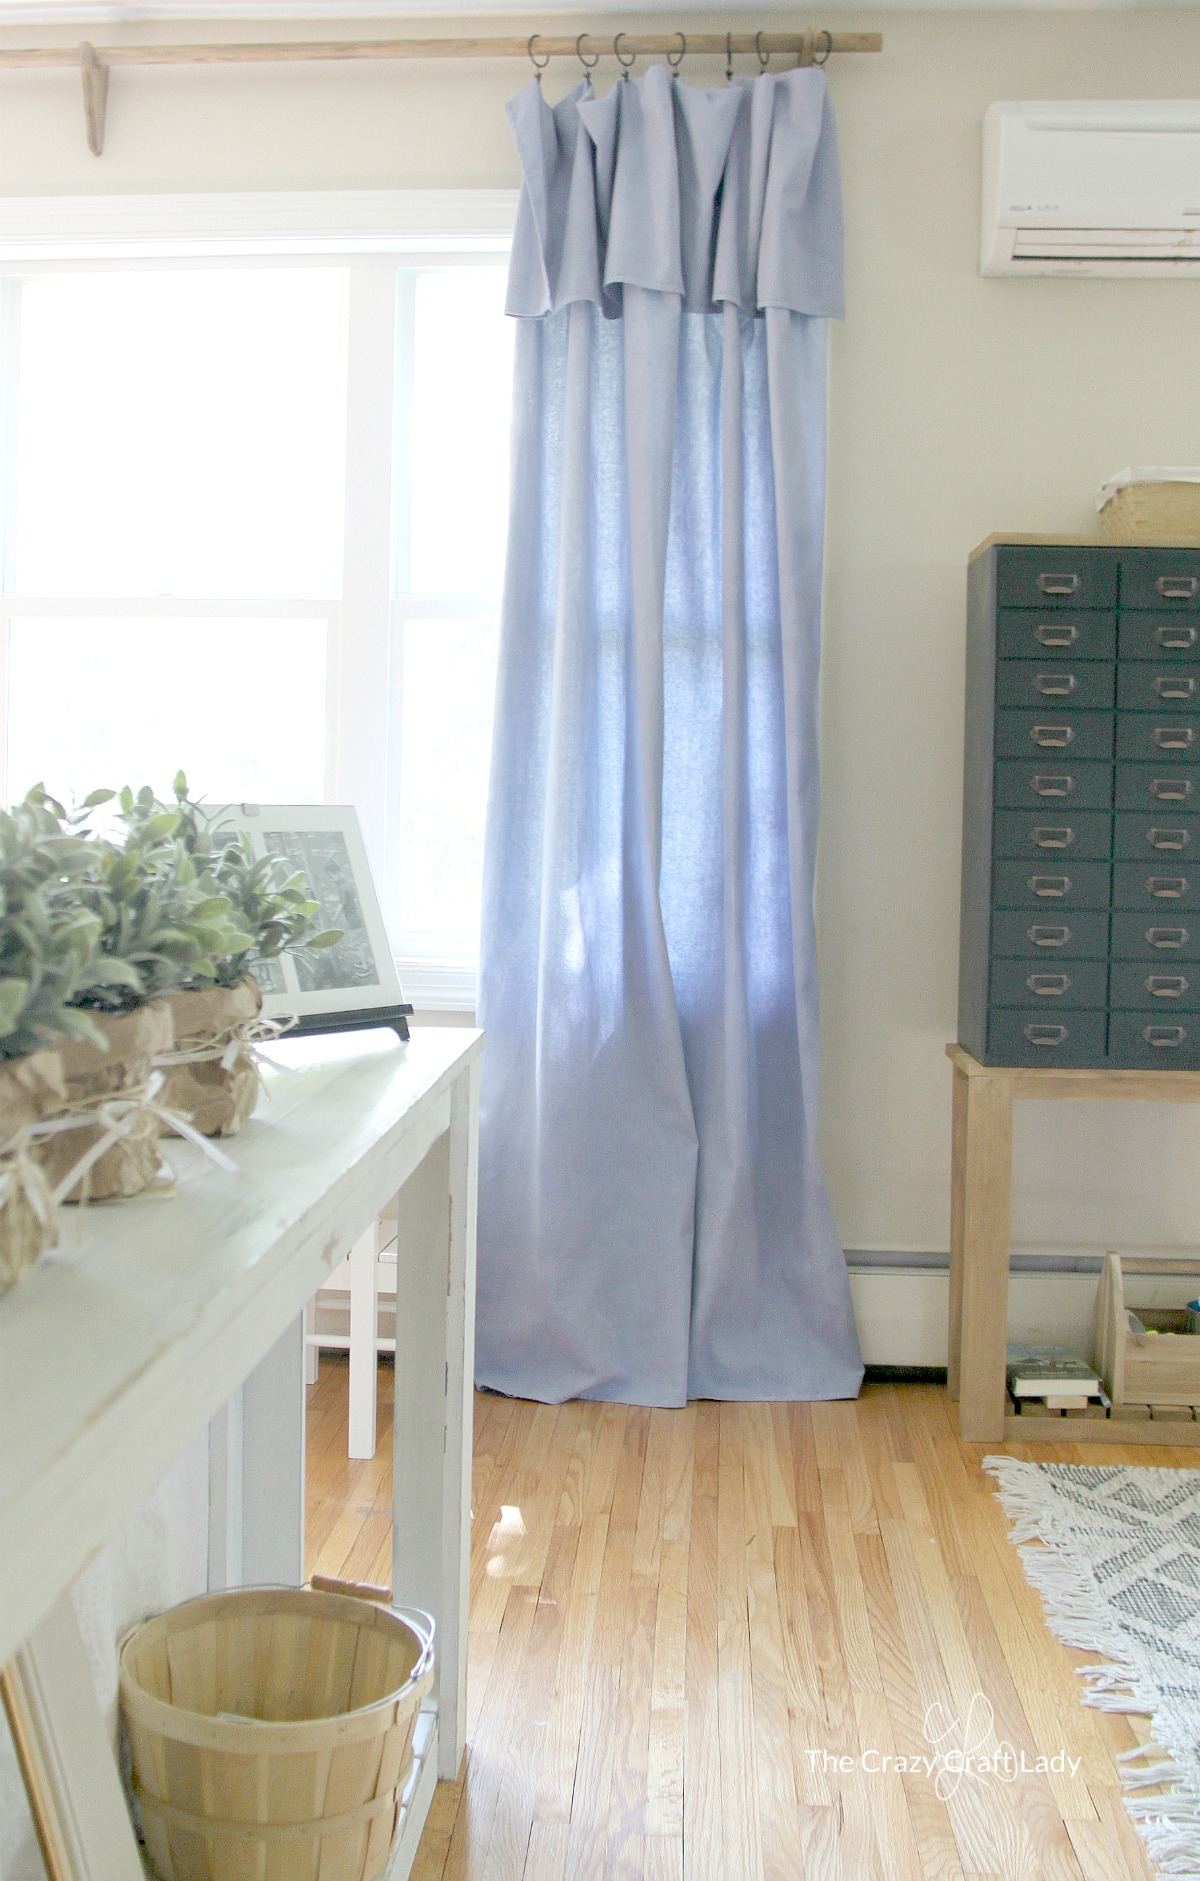 Save TONS of money on drapery with these DIY no-sew drop cloth curtains. Make easy and inexpensive curtains and a DIY curtain rod on a tiny budget. Farmhouse style curtains and wood farmhouse drapery rod.